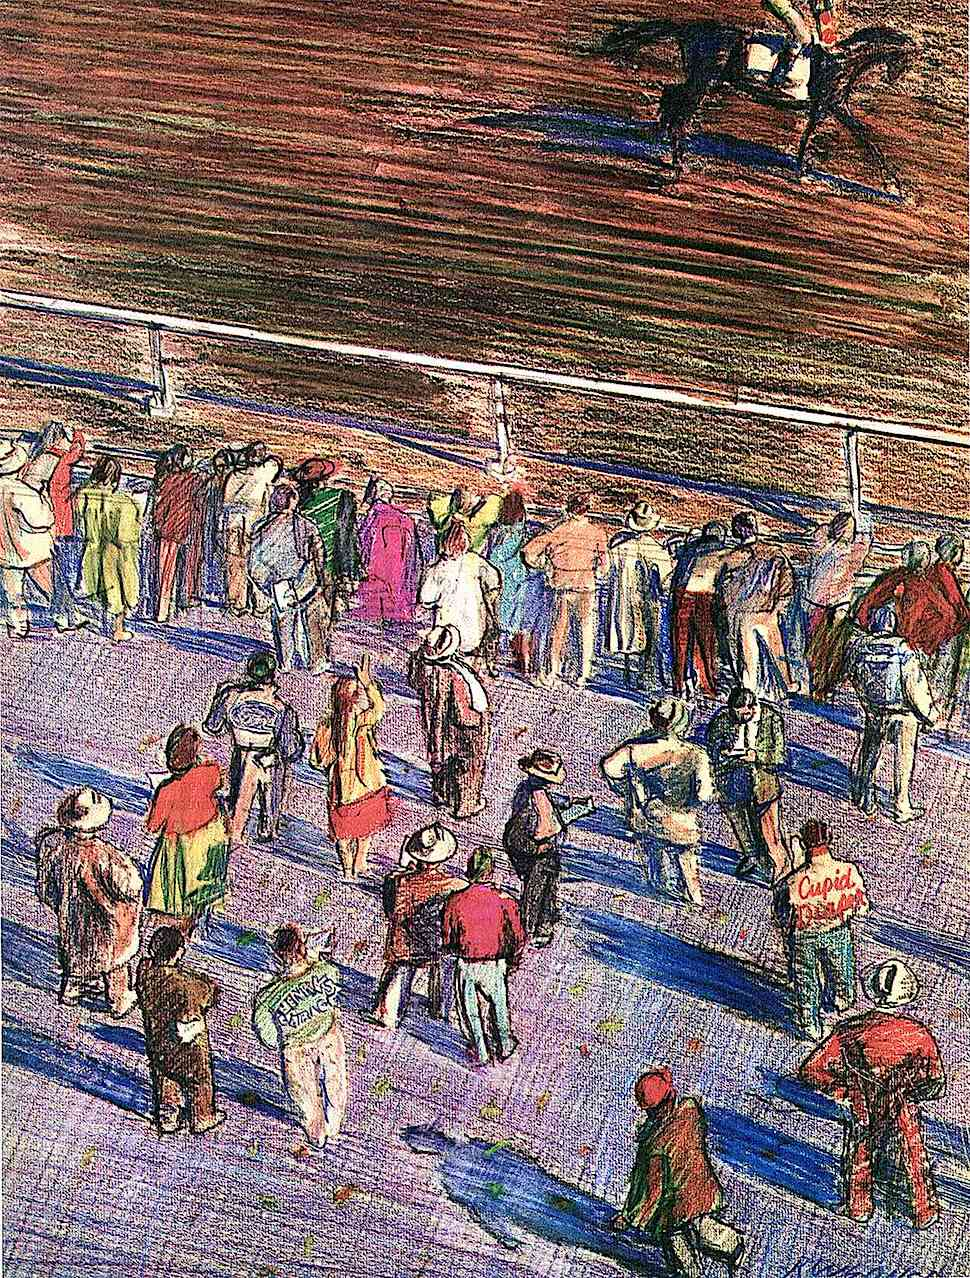 Robert Weaver 1968 art, people at a horse race track